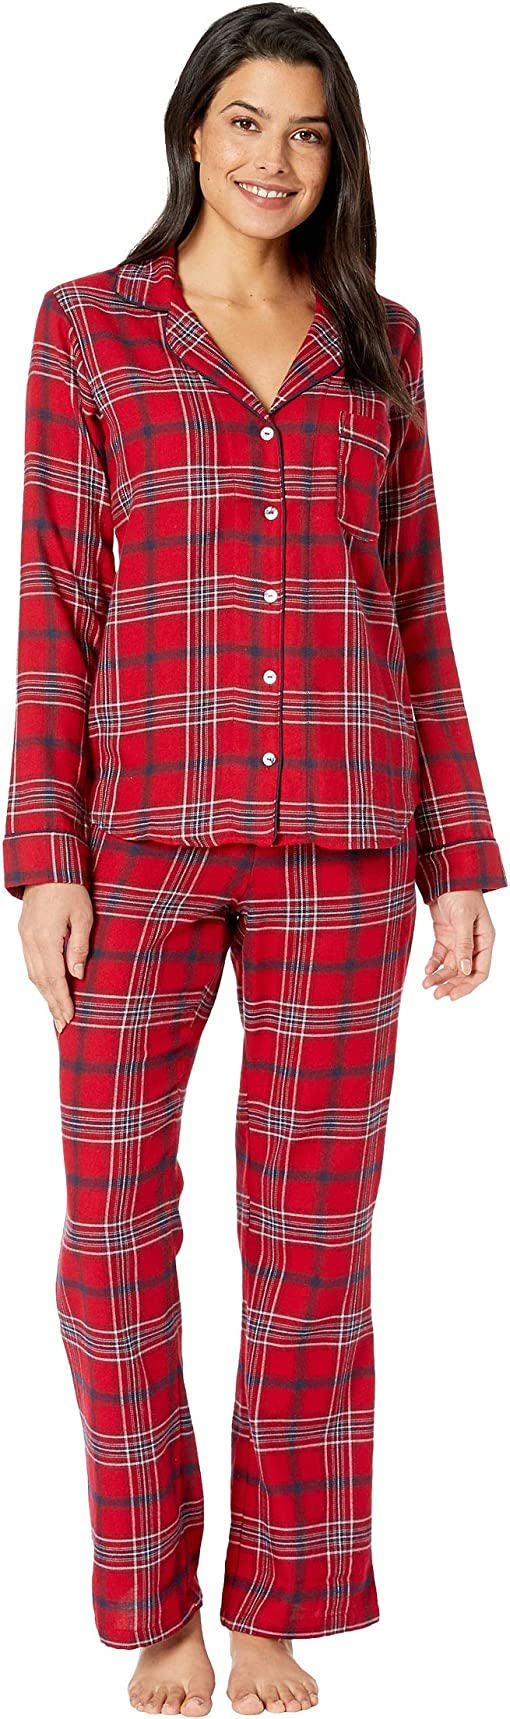 Chili Pepper Plaid